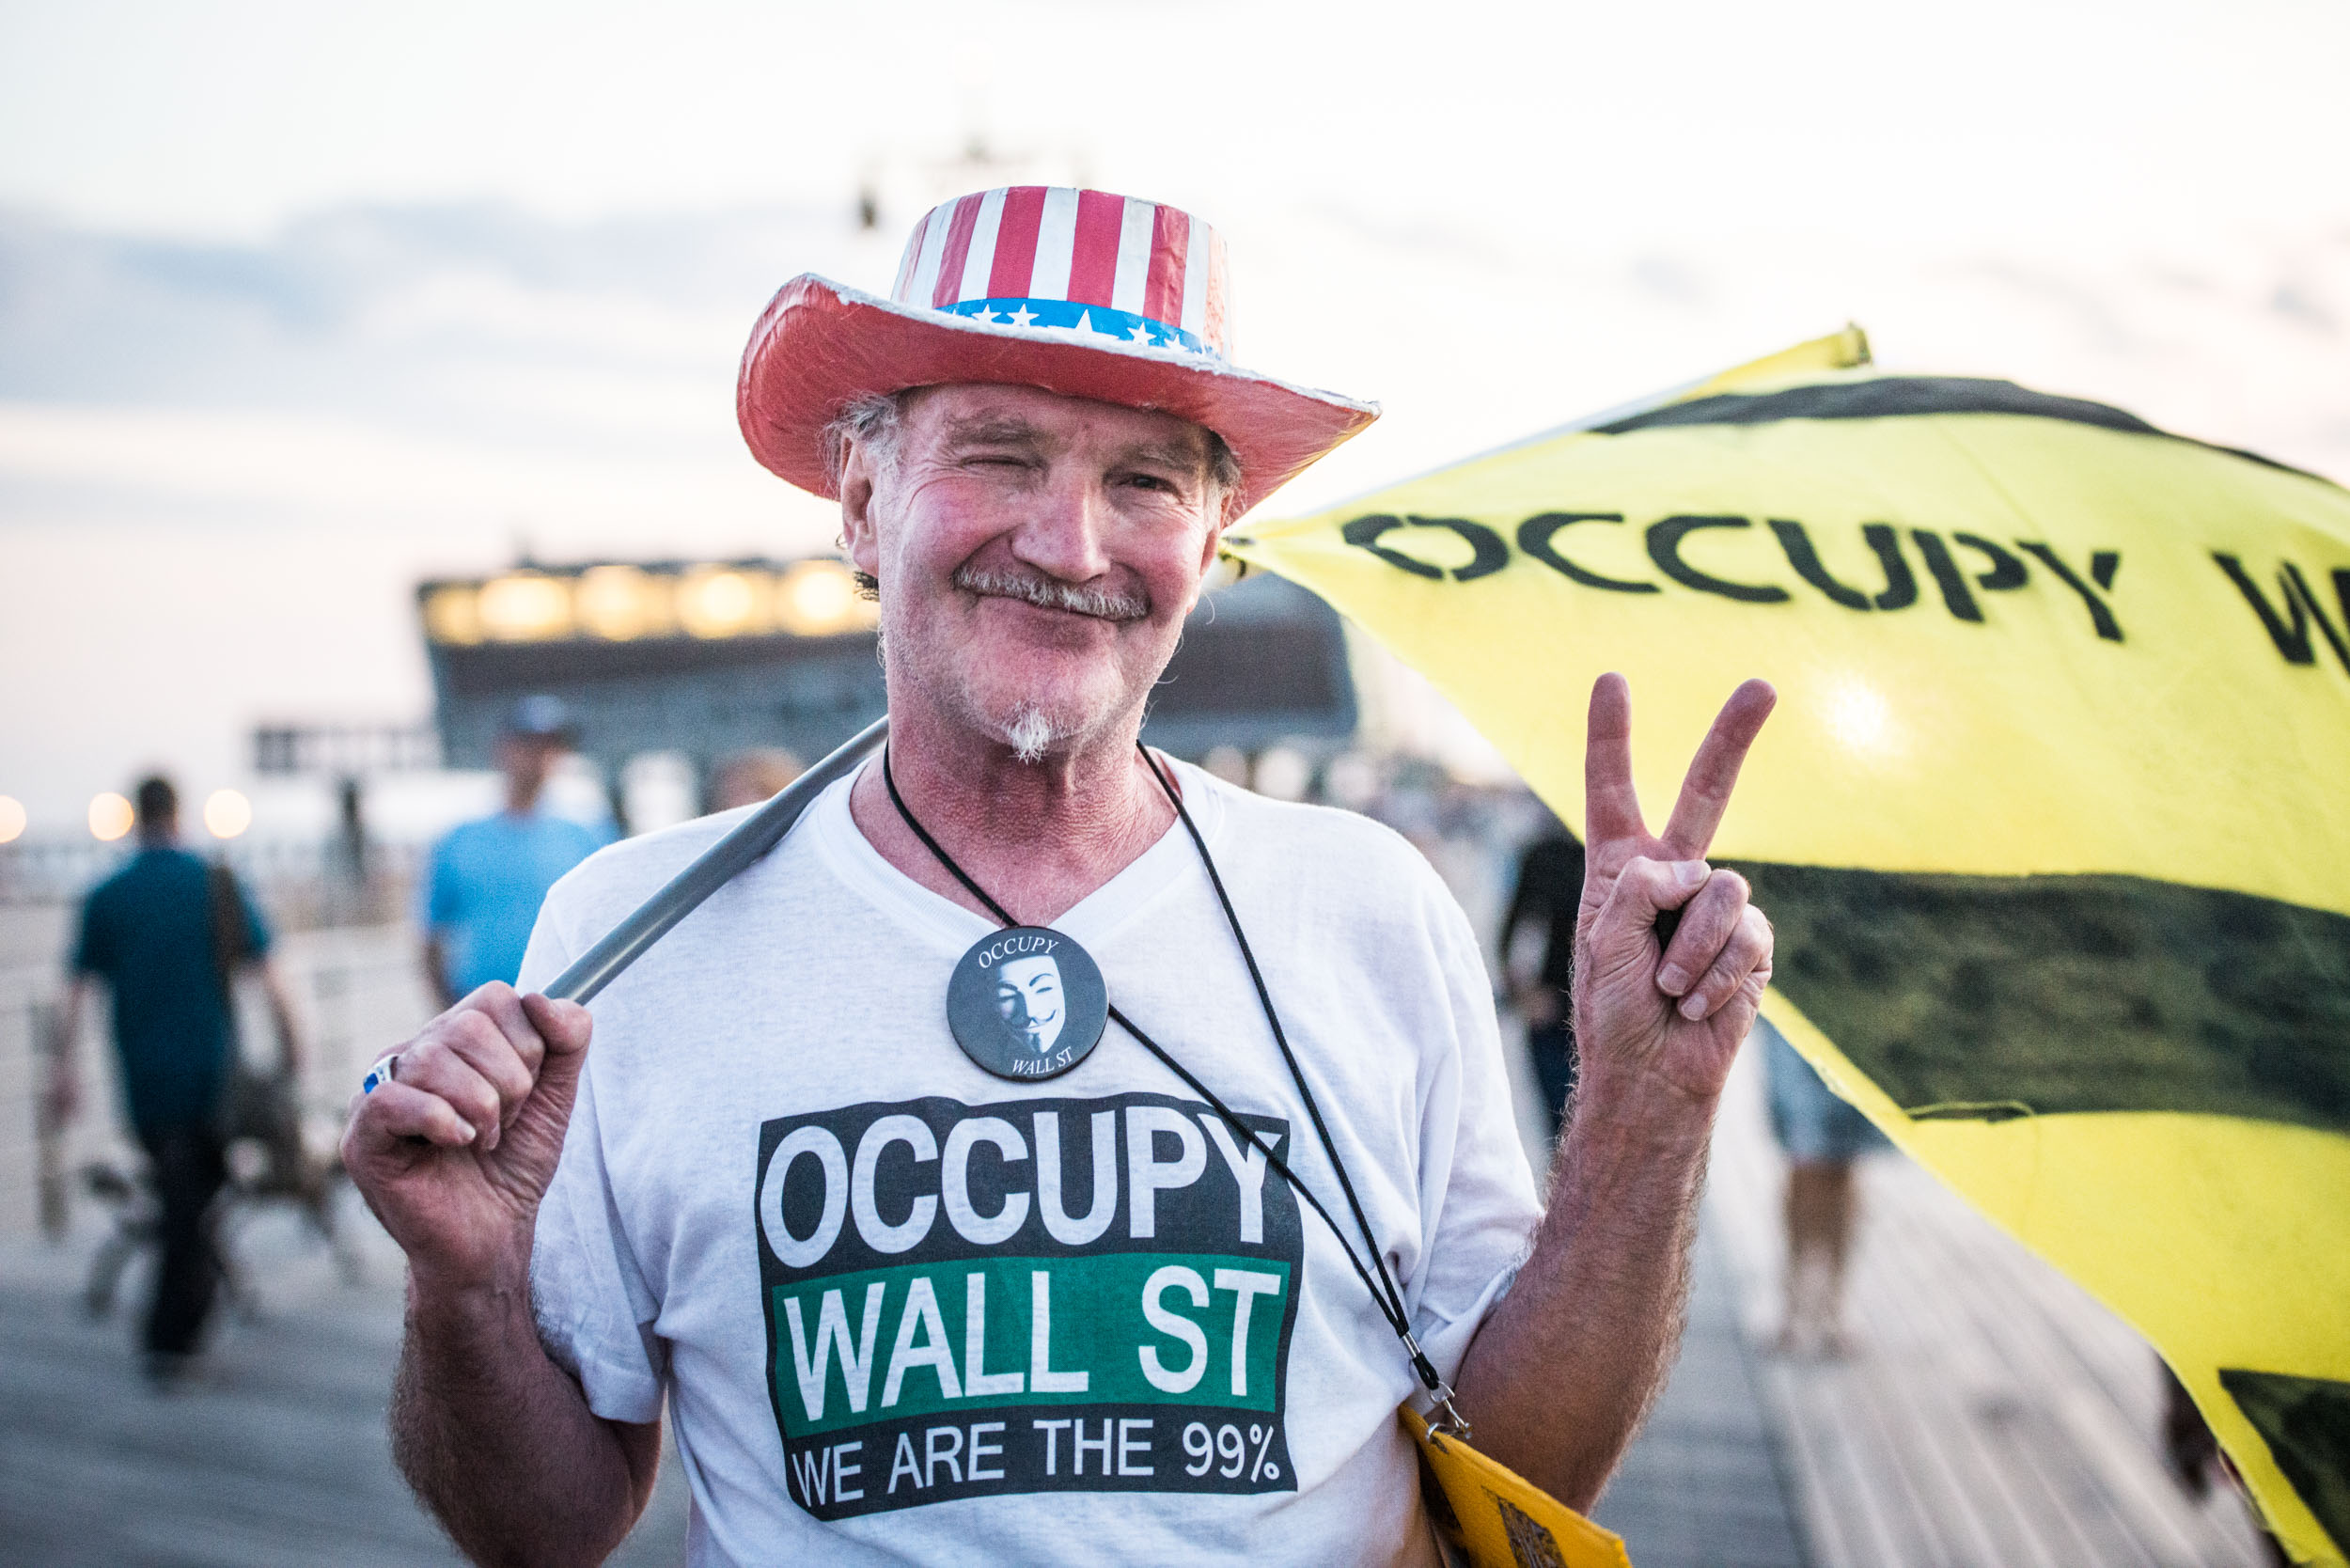 Occupy wall st - Current events - Photo credit Nicola Bailey.jpg